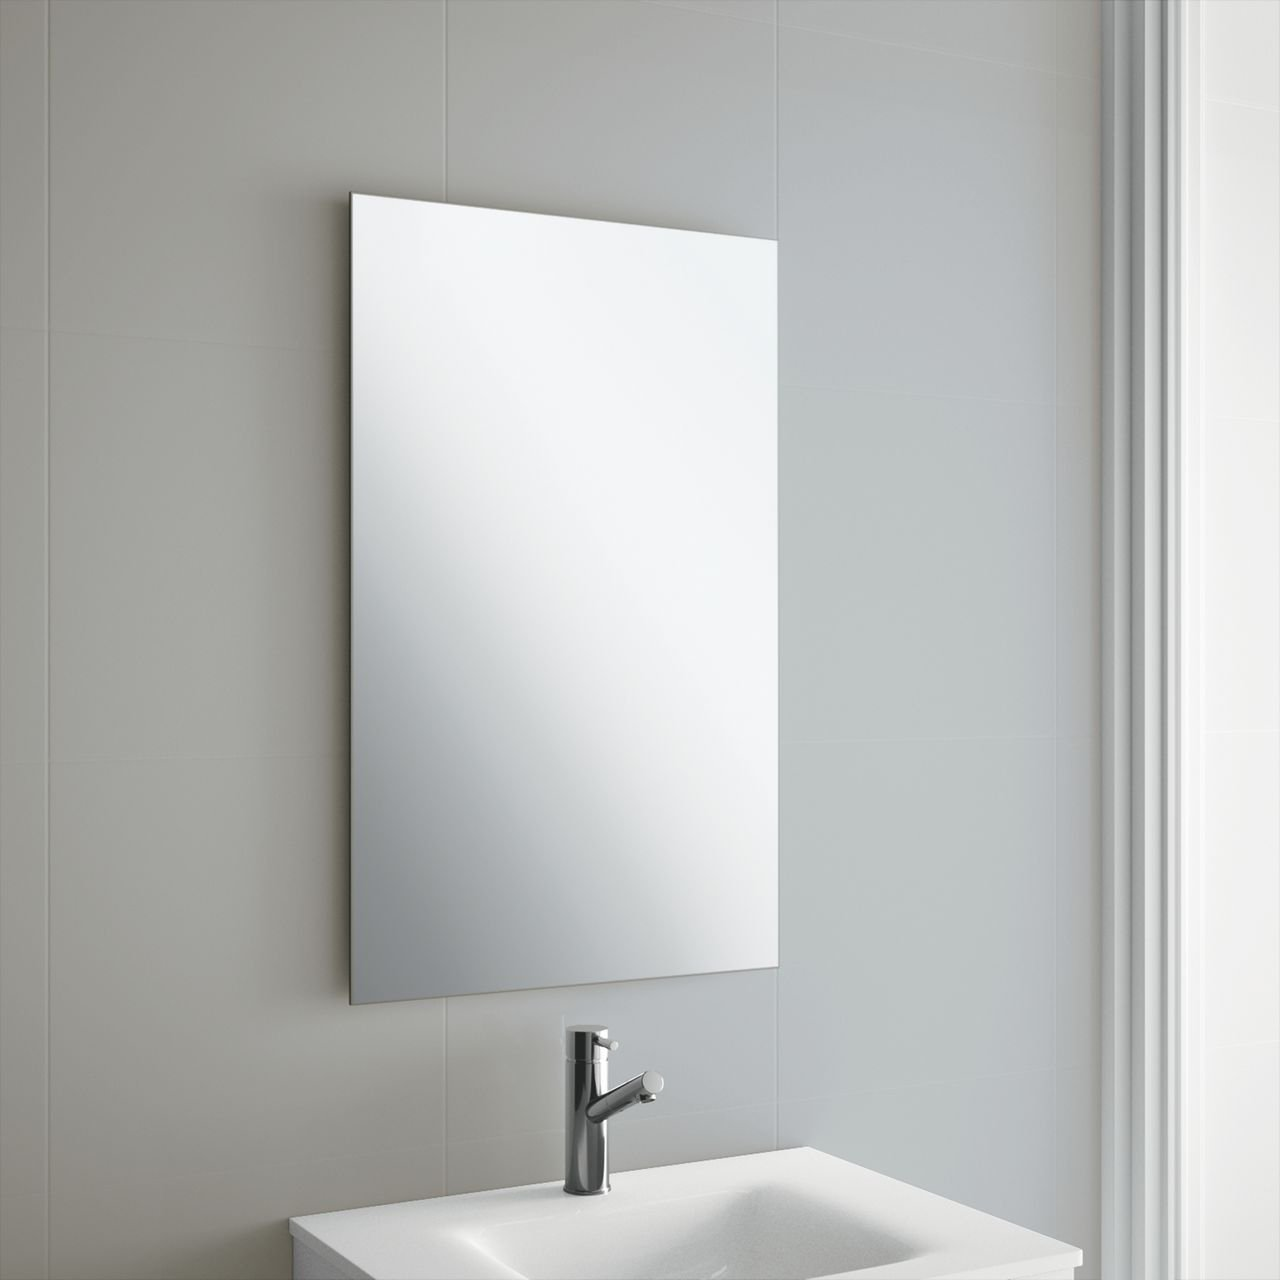 50 x 70cm frameless rectangle bathroom mirror with wall for Mirror 50 x 70